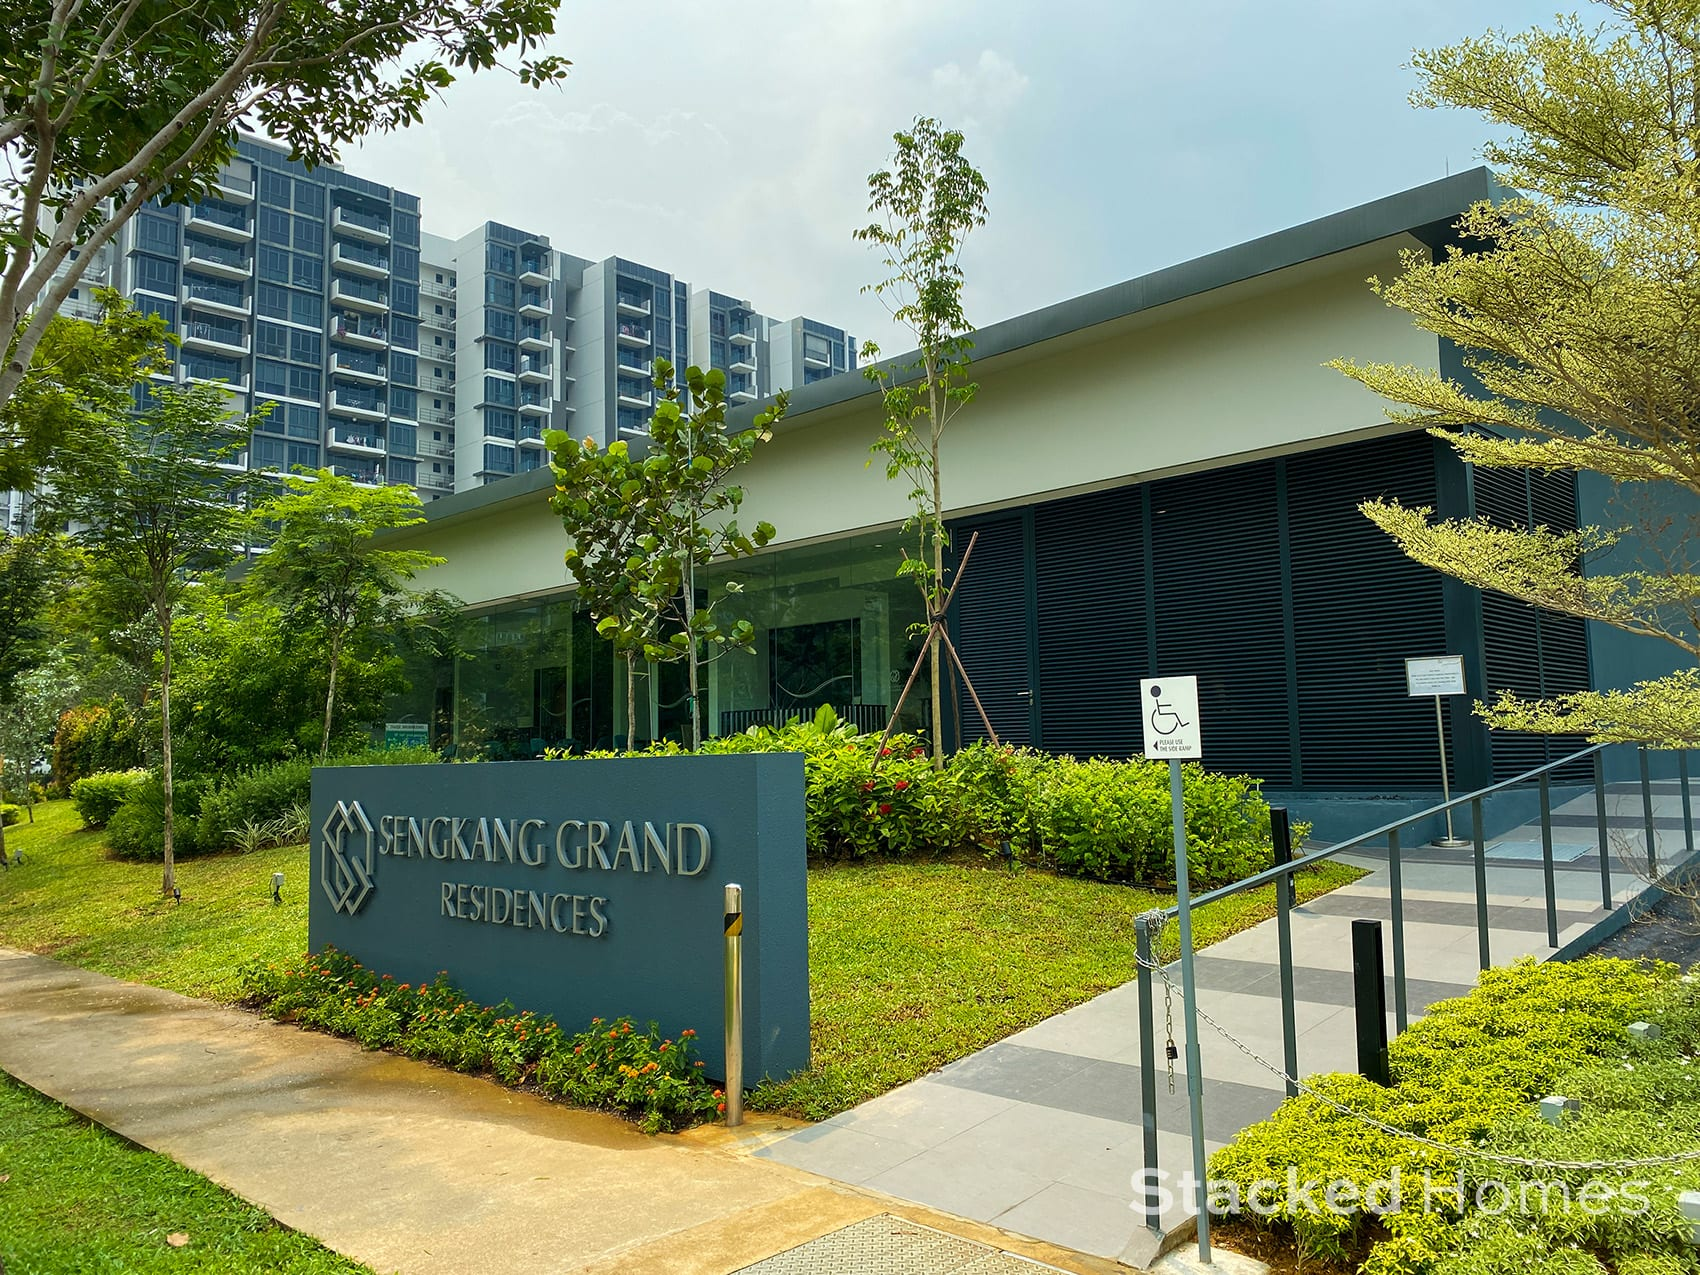 sengkang grand residences review